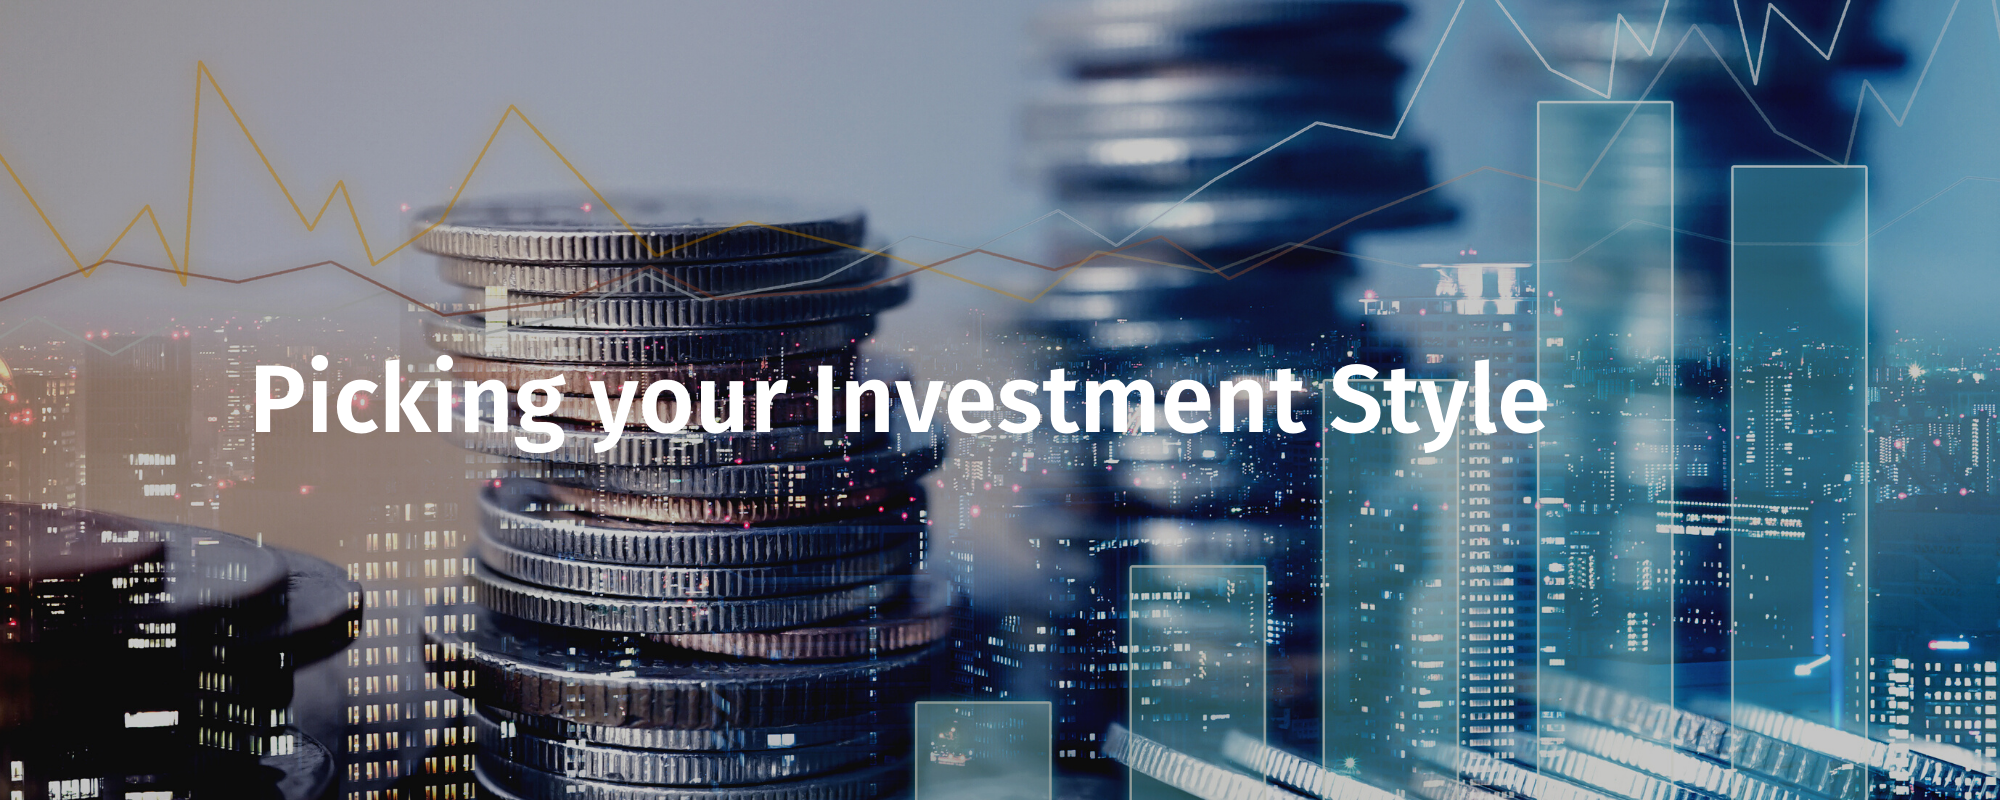 Picking your Investment Style